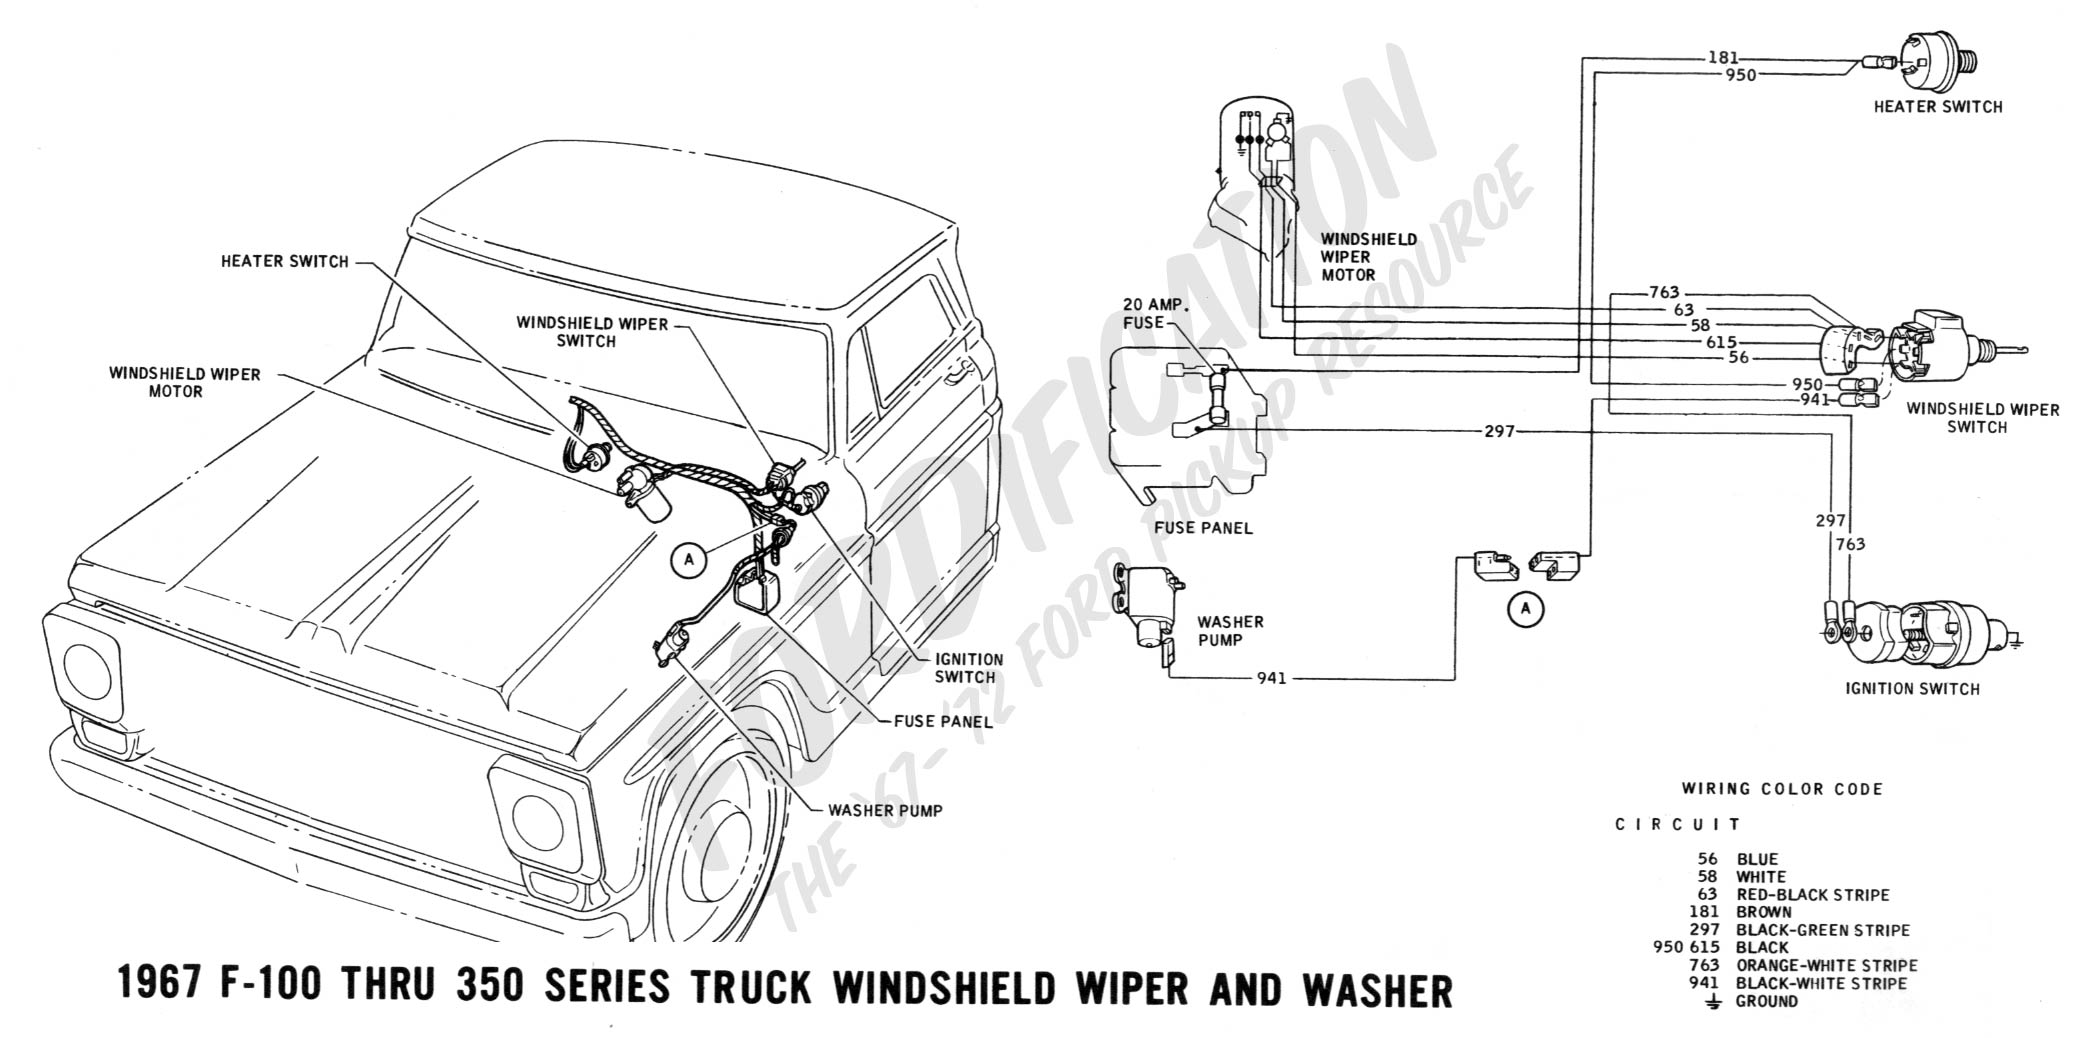 Ford Truck Technical Drawings And Schematics Section H Wiring F150 Schematic 1967 F 100 Thru 350 Windshield Wiper Washer